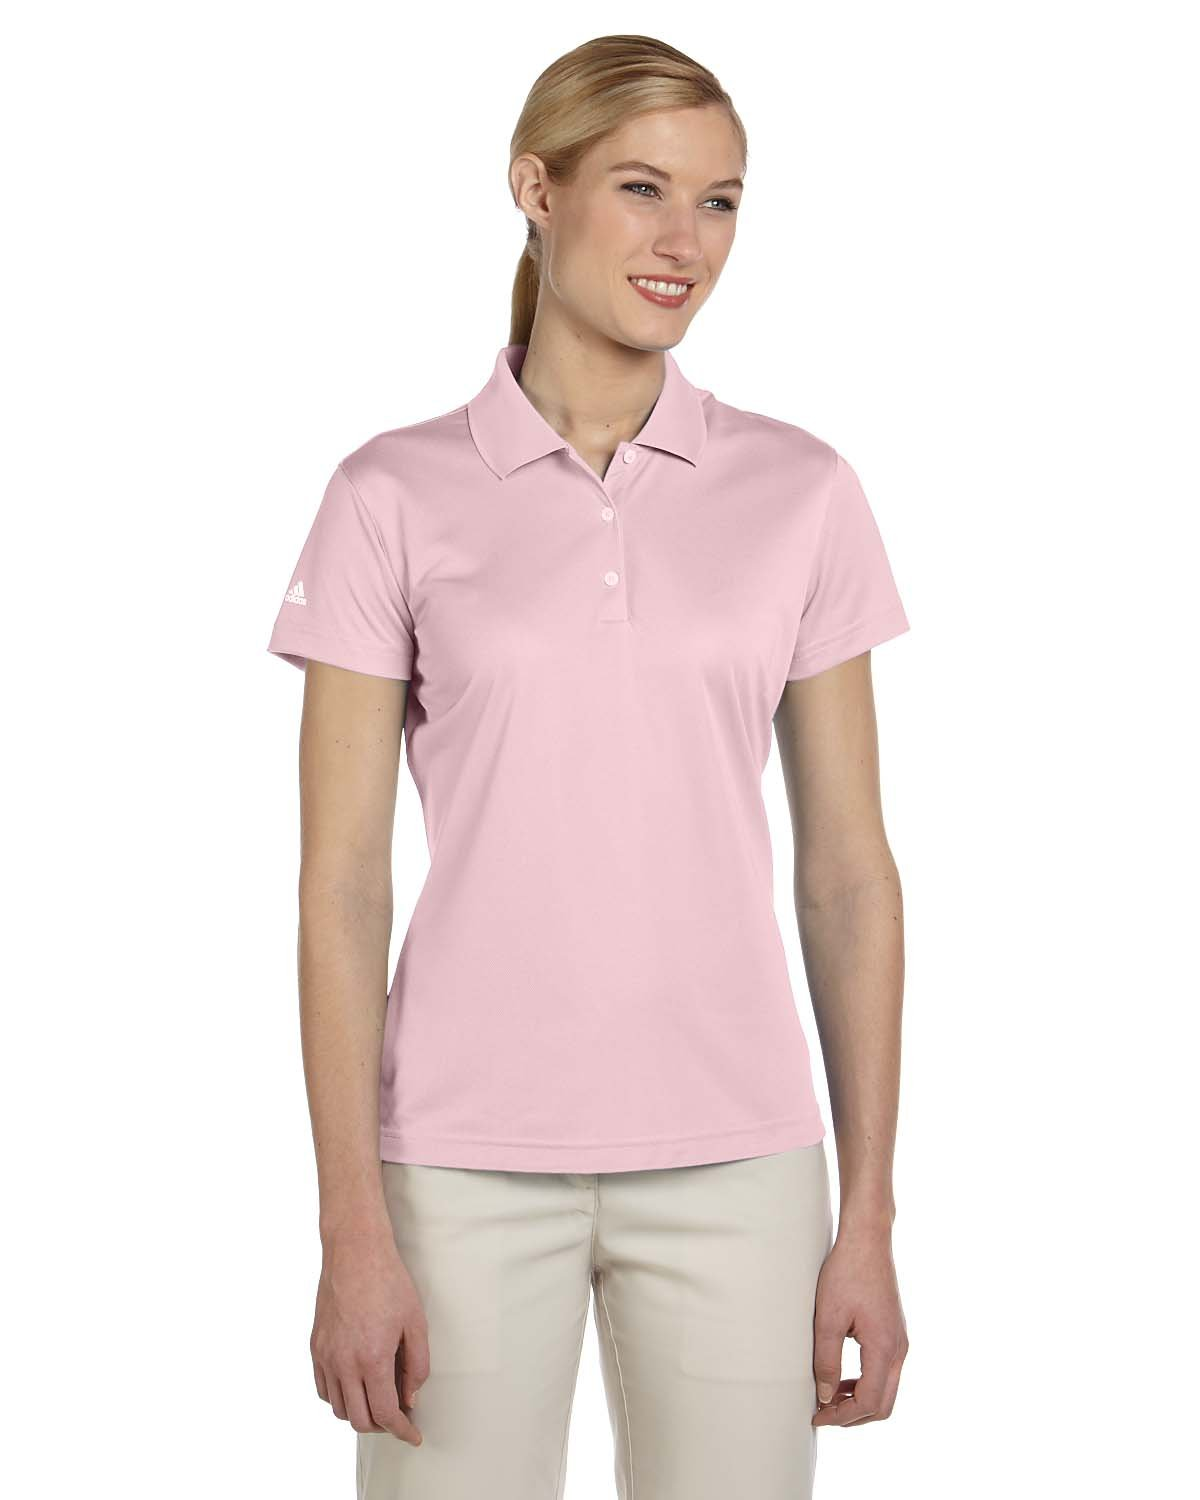 adidas Golf Ladies ClimaLite Pique Short-Sleeve Polo - Tea Rose A131 L by adidas